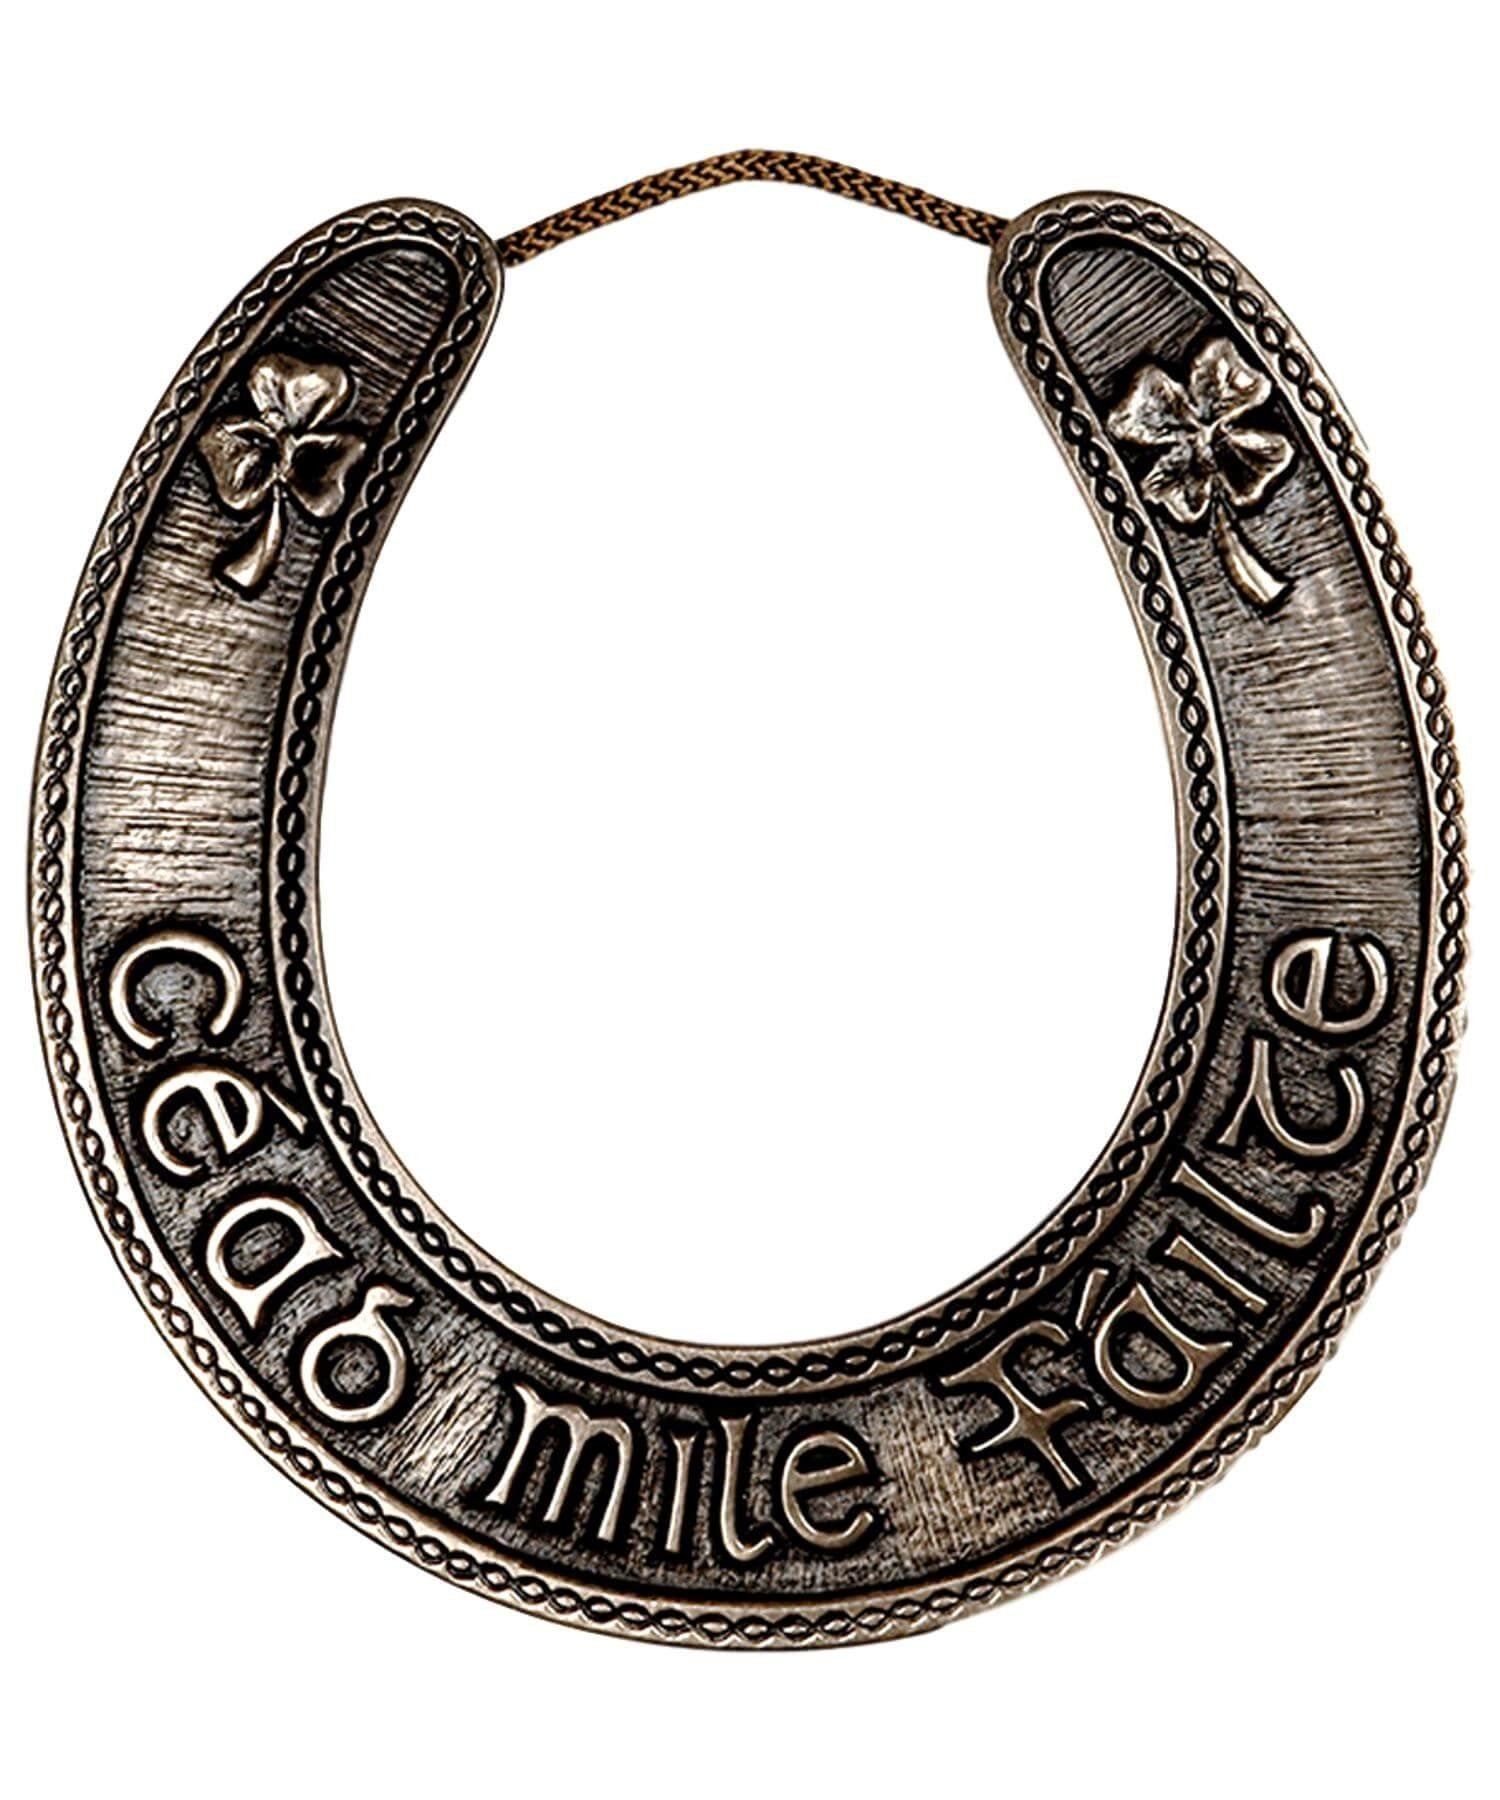 Carved Words - Irish Horseshoe Wild Goose Souvenir